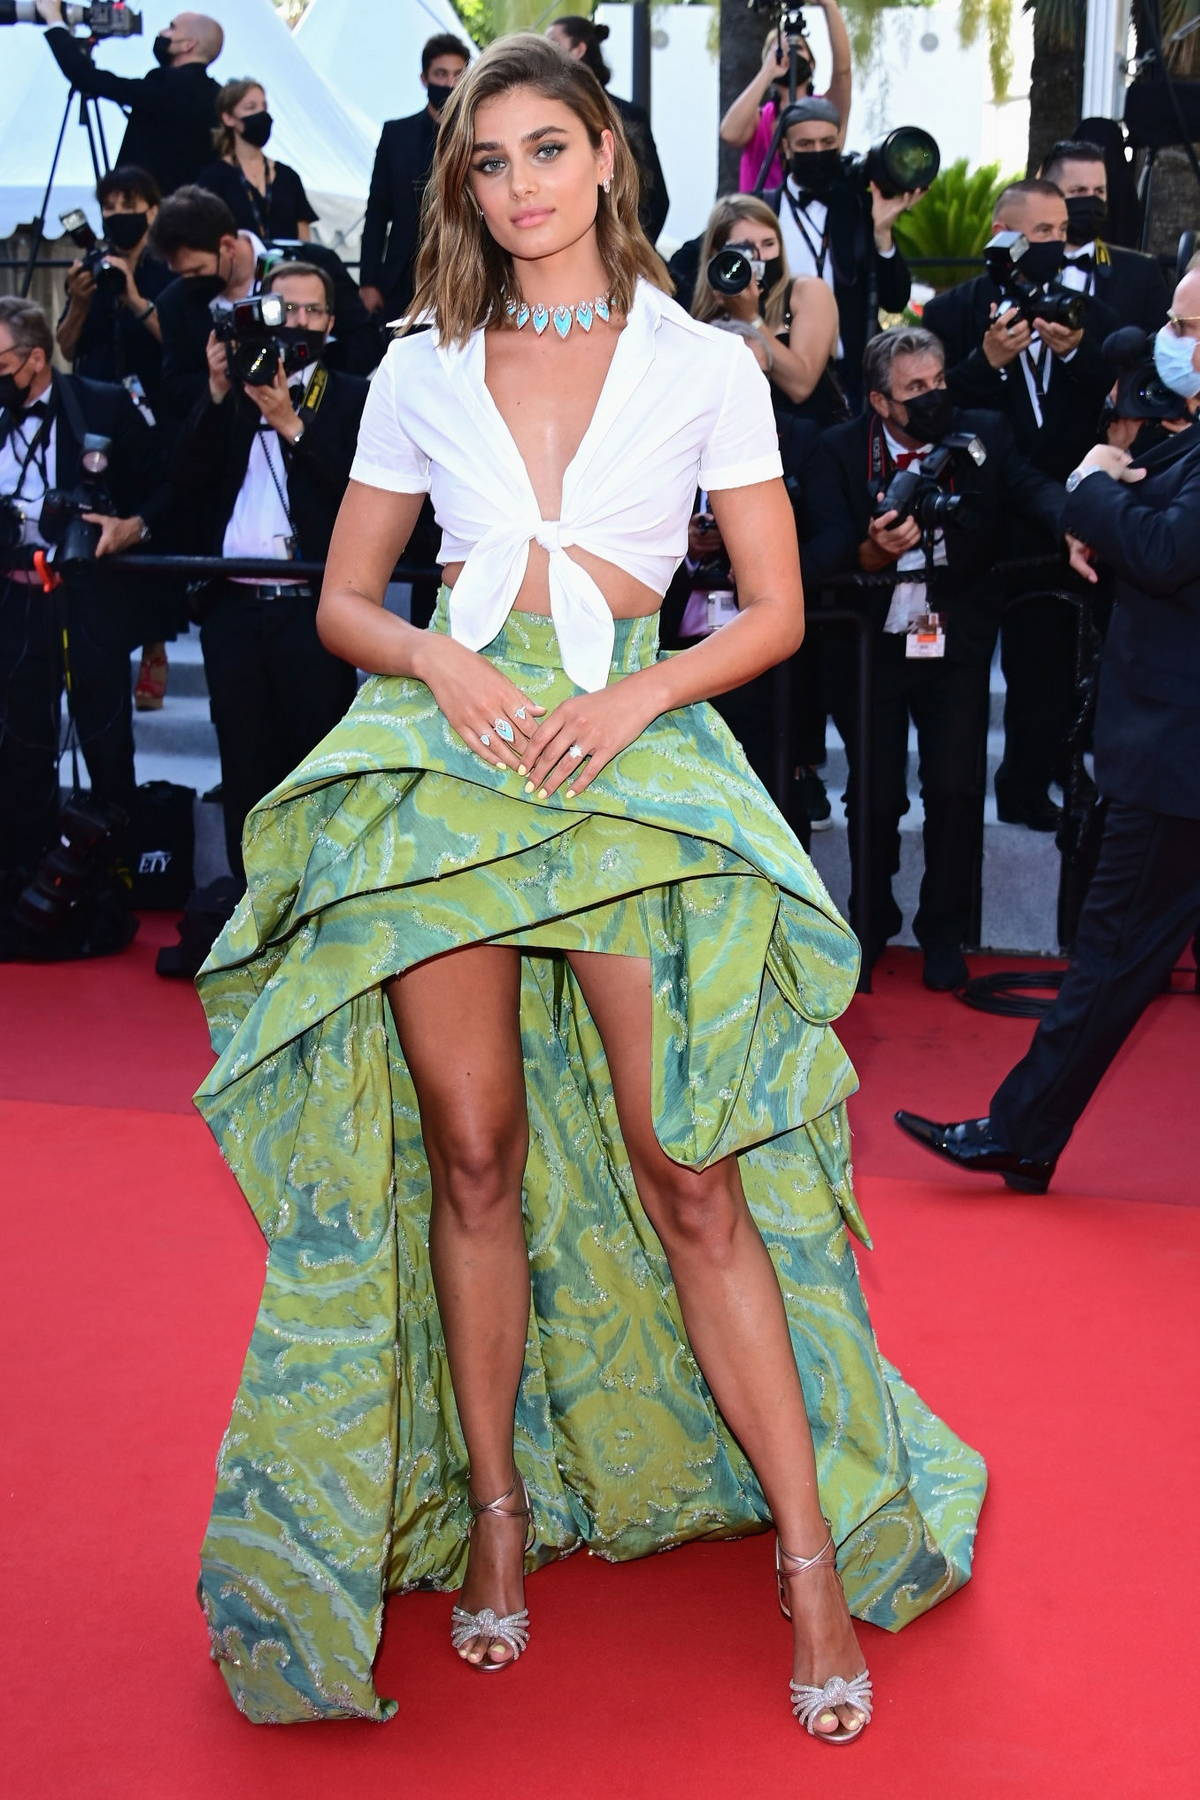 Taylor Hill attends the screening of 'Tre Piani' during the 74th annual Cannes Film Festival in Cannes, France